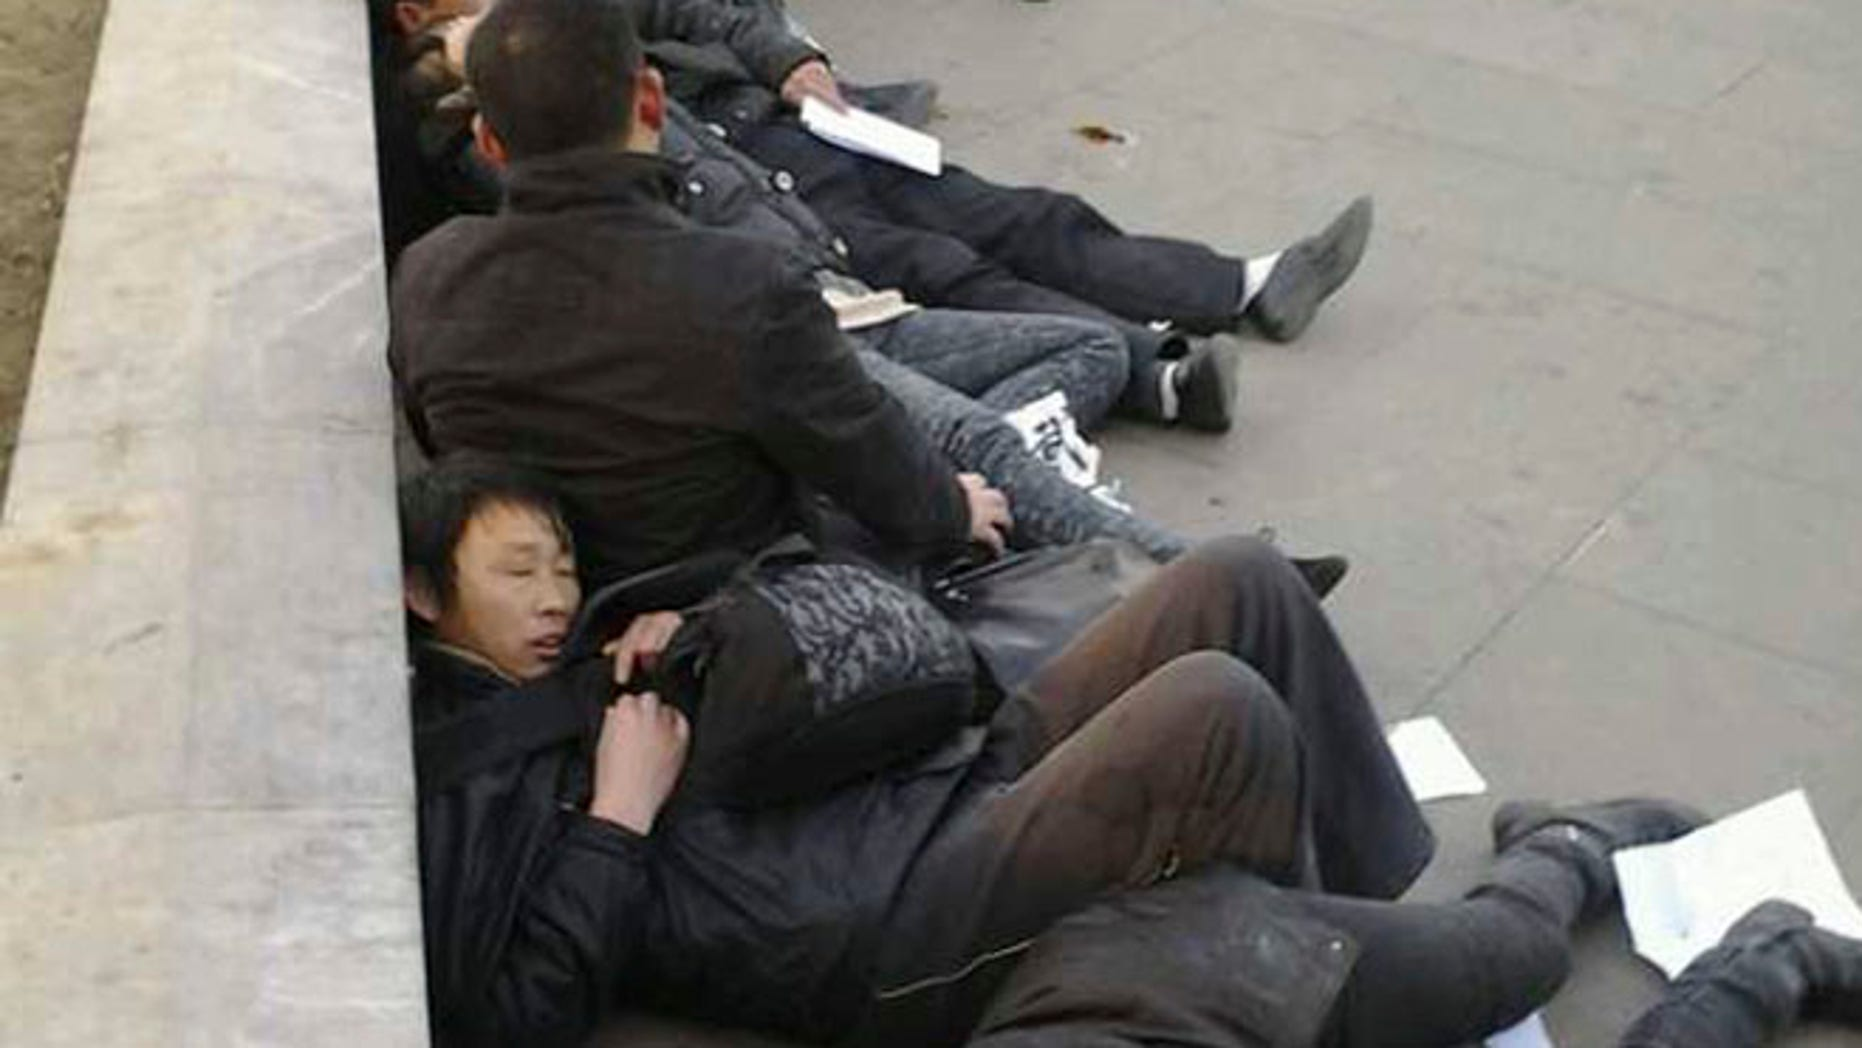 In this photo taken Dec. 10, 2013, which The Associated Press obtained on Wednesday, Dec. 11, 2013, from a friend of the petitioners, Chinese residents from Wuhan province lie on the ground after drinking pesticide near a historic watchtower in the heart of Beijing, China.  A dozen central Chinese city residents protesting the demolition of their homes drank pesticide in Beijing in a desperate bid for attention that underscores the failures of a decades-old petitioning system. The photo has been authenticated based on its contents and other AP reporting.